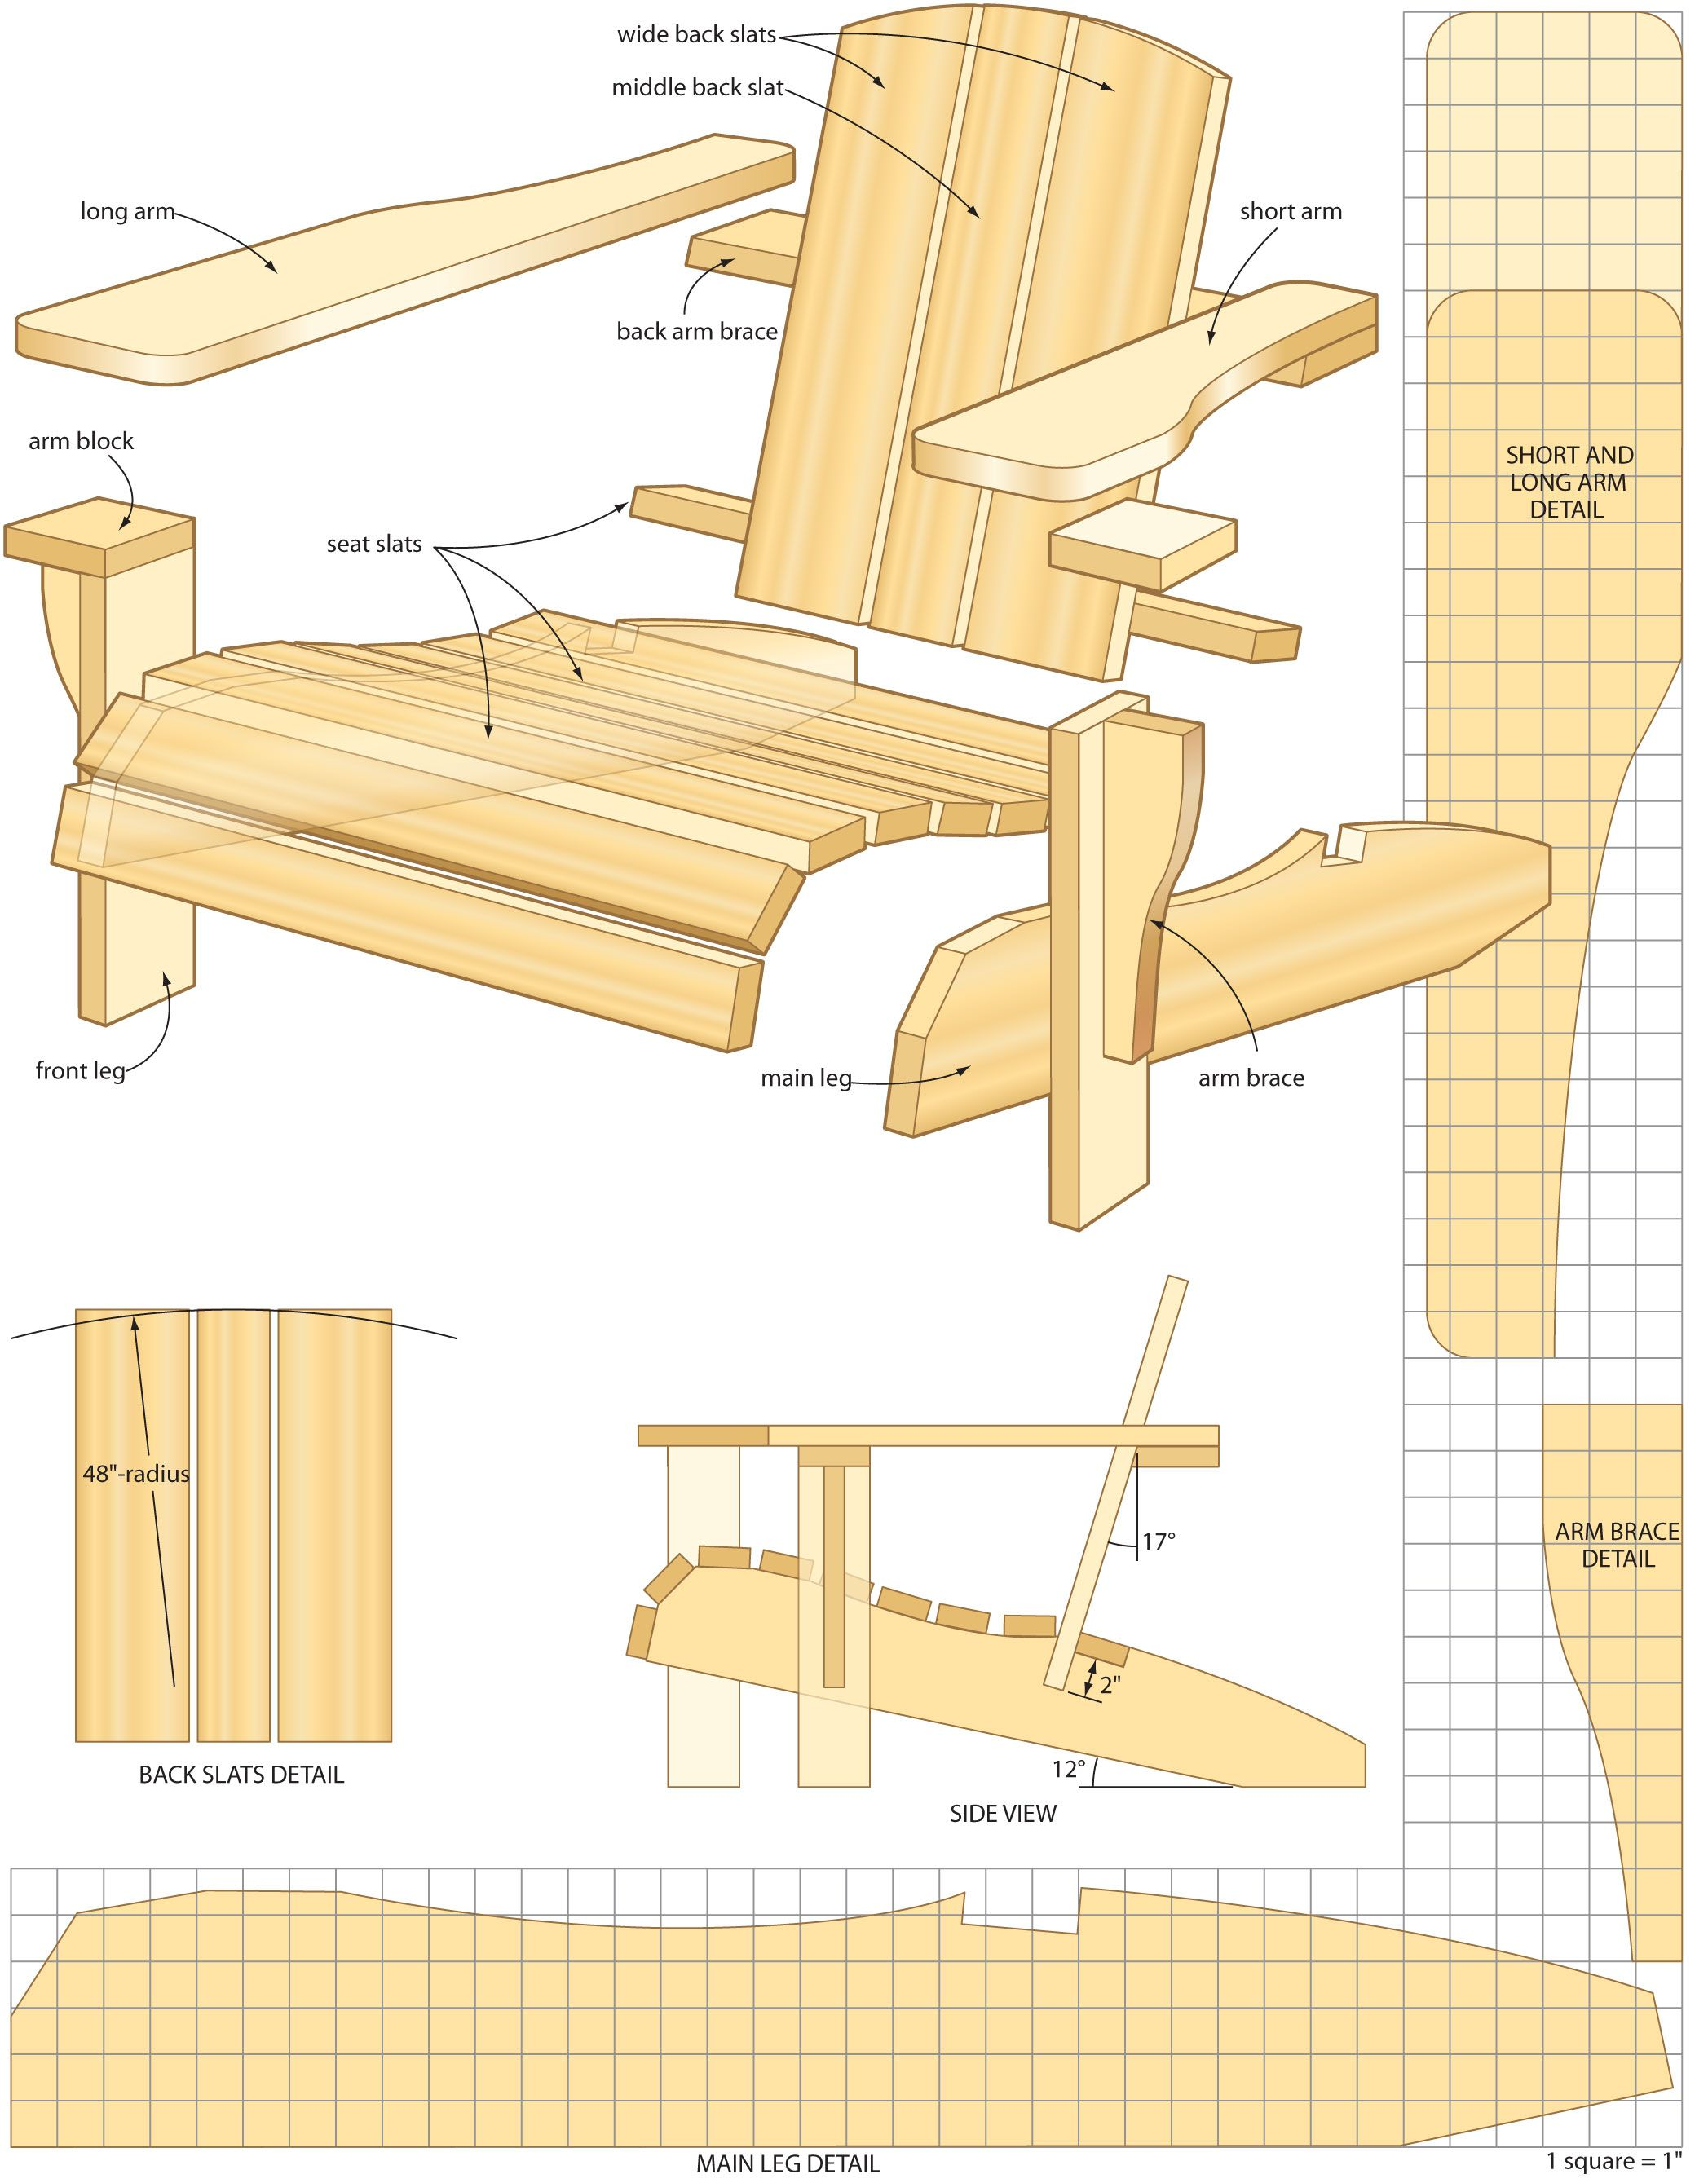 Build This Muskoka Chair Canadian Home Workshop Woodworking Plans Free Woodworking Plans Adirondack Chair Plans Free